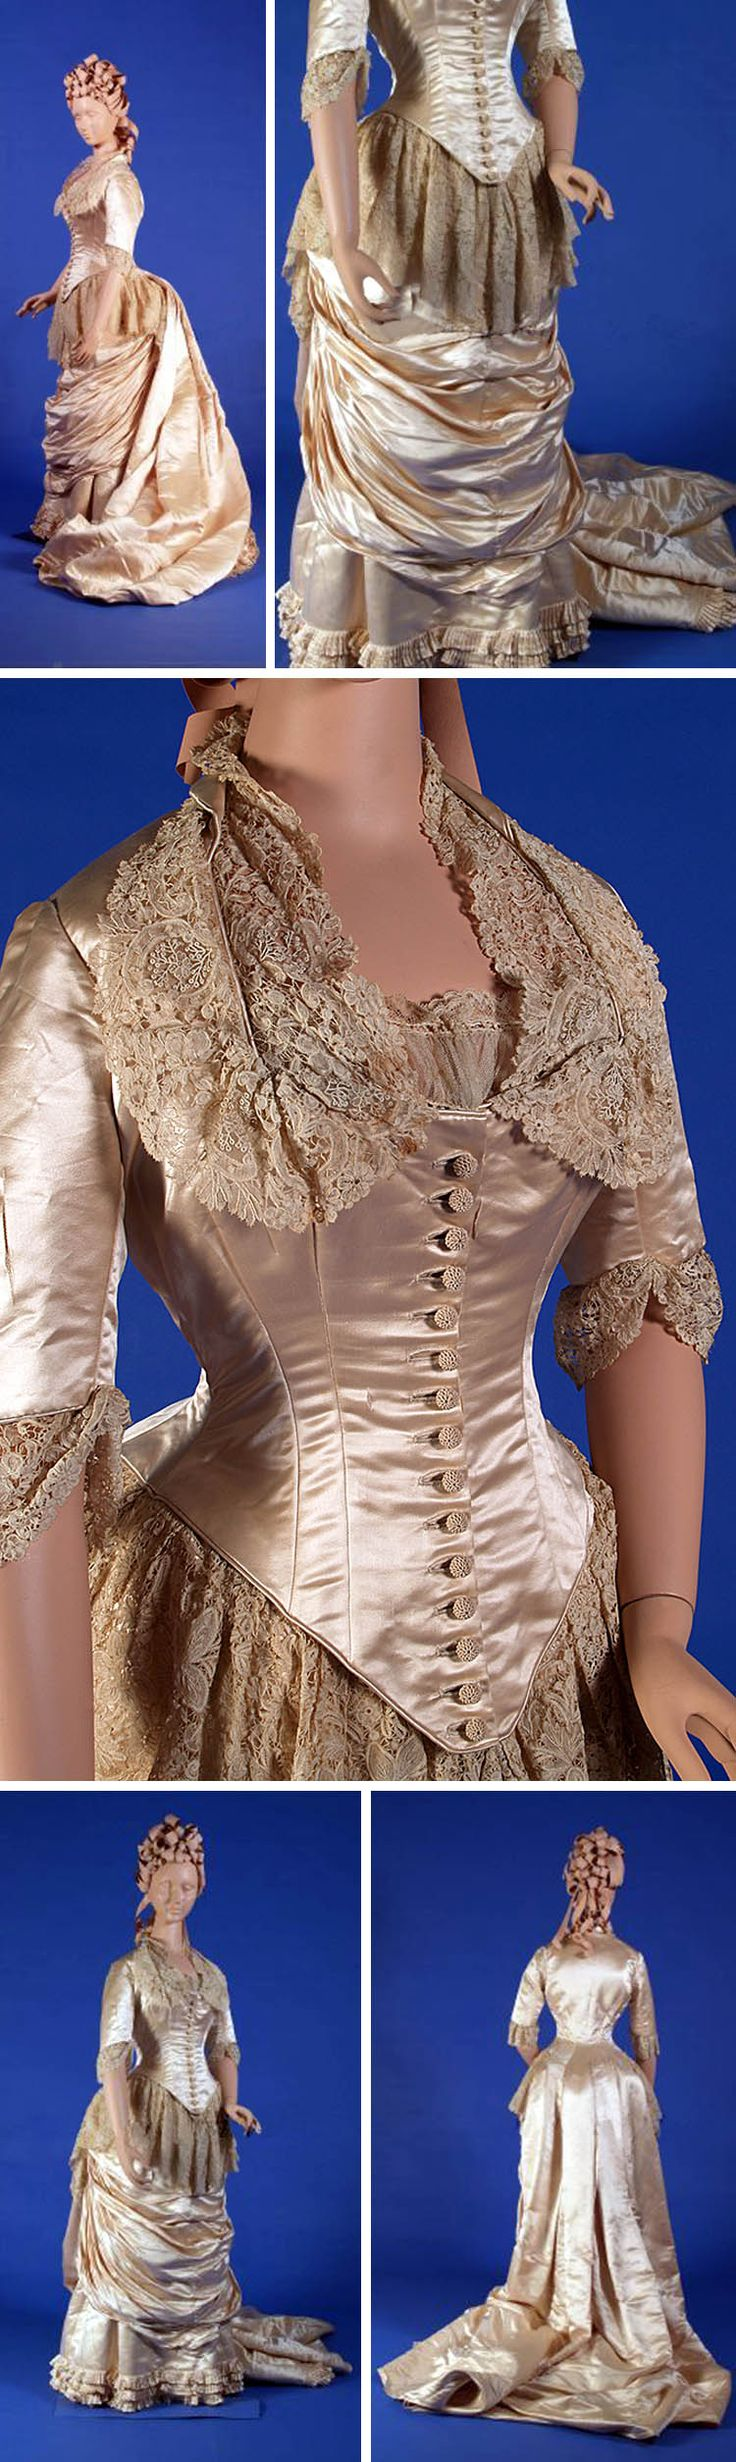 Wedding dress, American, ca. 1885. Cream silk satin, Rosepoint lace. Bodice has square neckline, lace trim, elbow-length sleeves, long train. Skirt has satin ruched in front, lace swags over hips, small pleated ruffles trim at hem. Kent State Univ. Museum